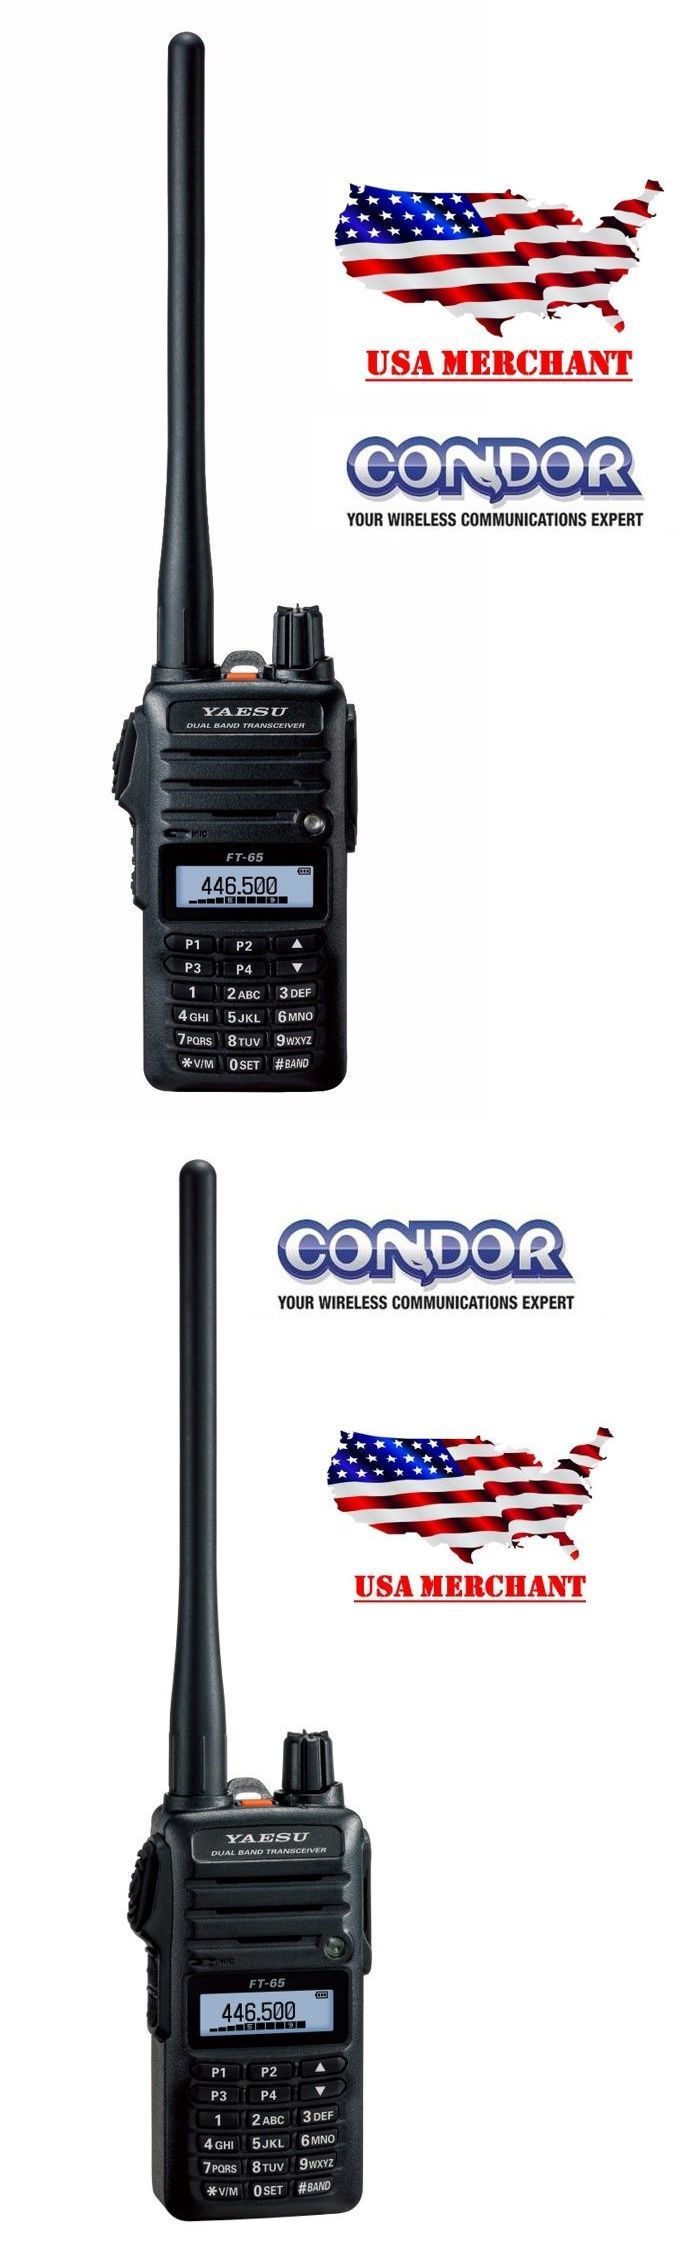 Ham Radio Transceivers: Yaesu Ft-65R - Vhf/Uhf 2 Meter/70Cm Dual Band Fm Handheld Transceiver BUY IT NOW ONLY: $189.95